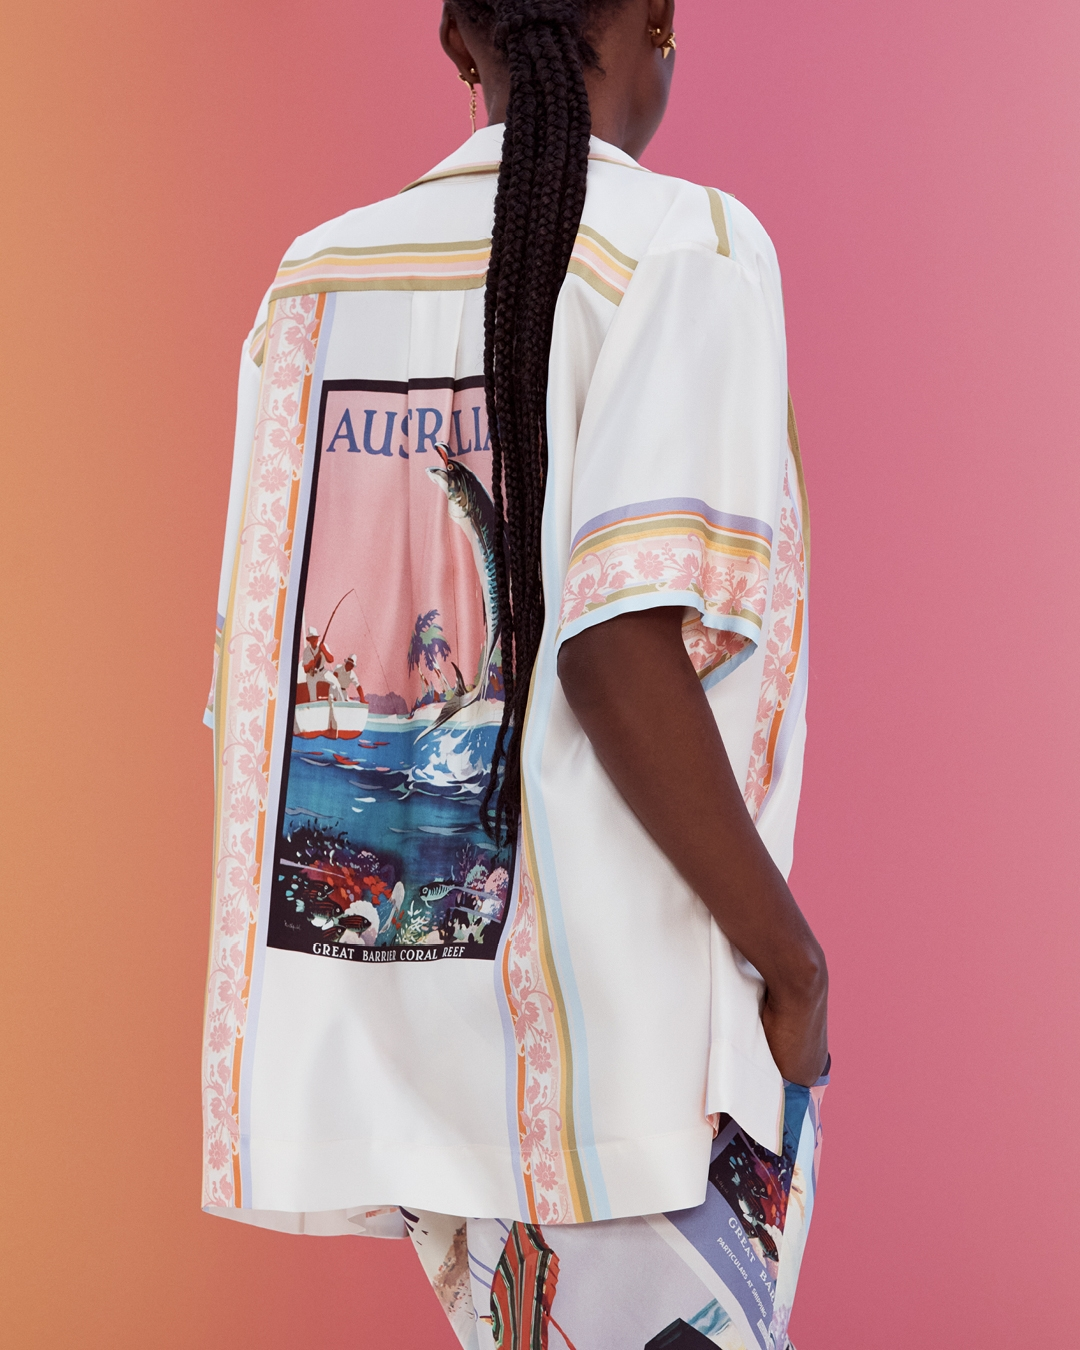 IN THE DETAIL: LOOK 4 RESORT READY TO WEAR 2022, THE POSTCARD